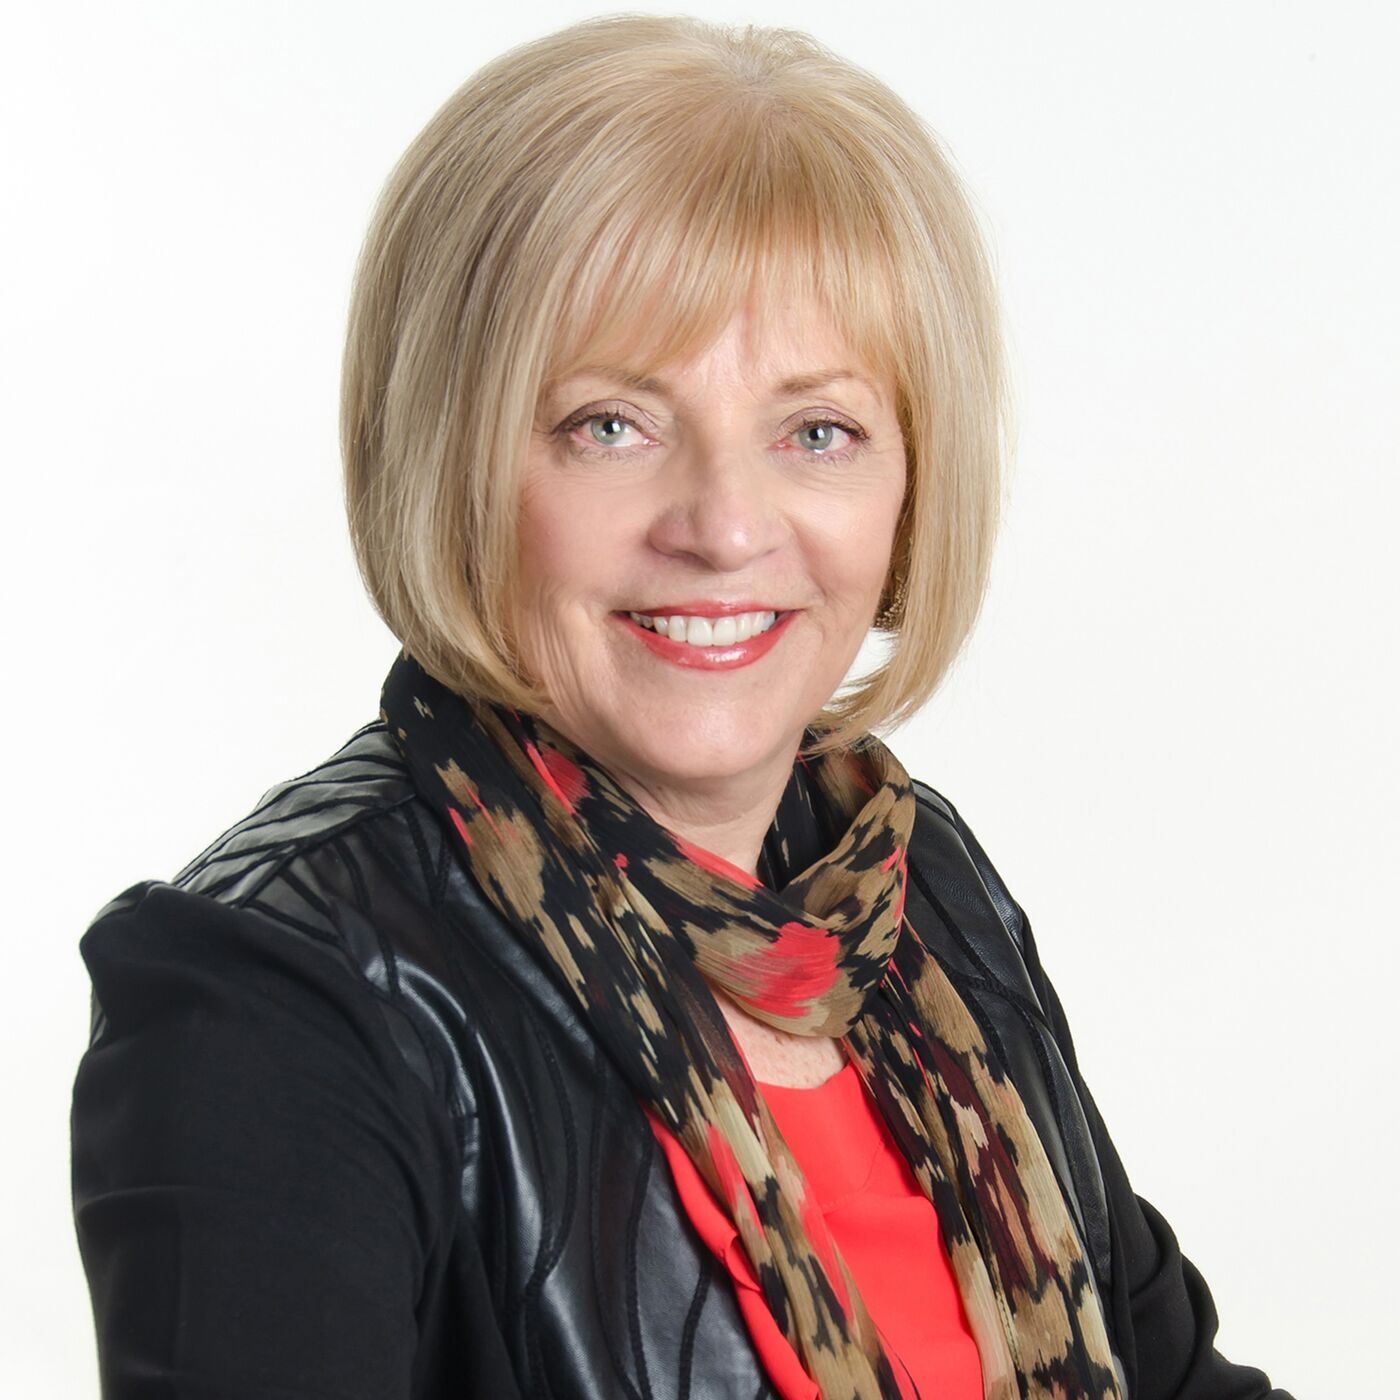 13 Nancy Hartling: The Senate, Guaranteed Income, Faith and Justice, and more!